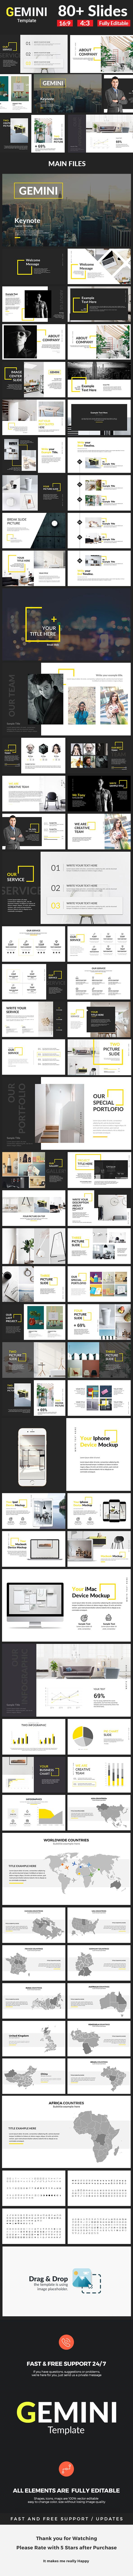 Gemini - Creative Keynote Template. Download here: https://graphicriver.net/item/gemini-creative-keynote-template/17137723?ref=ksioks